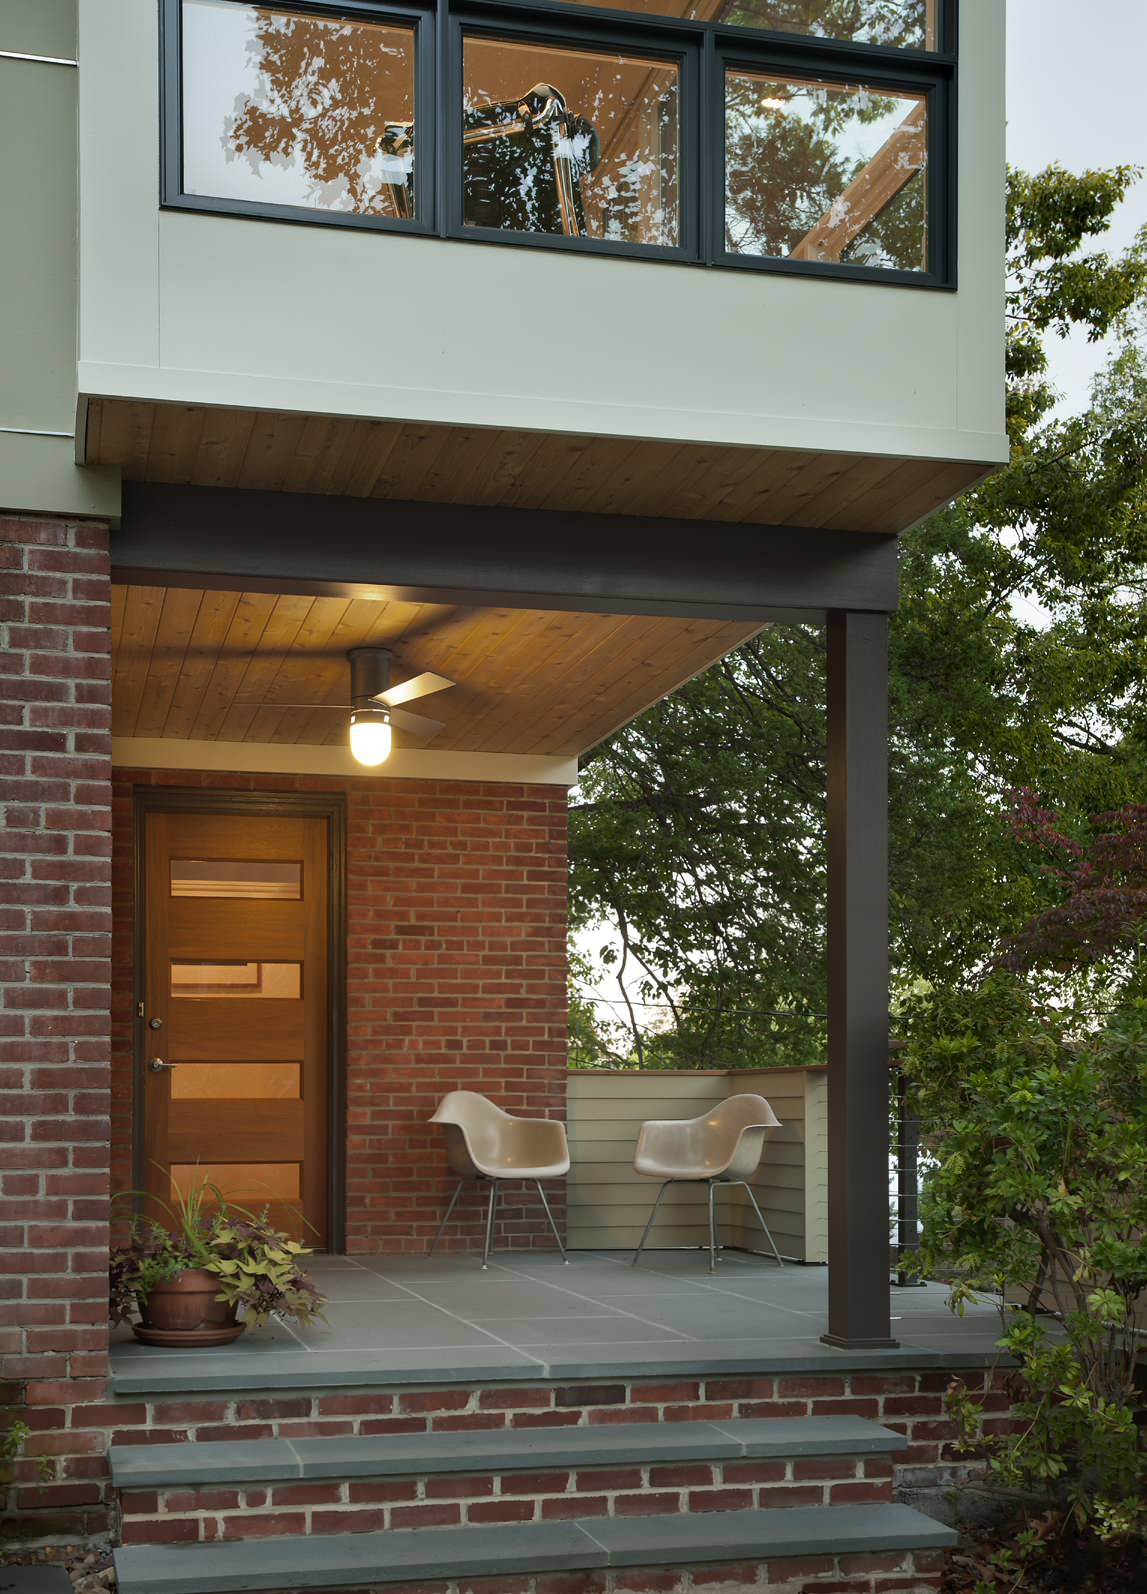 16 Enchanting Modern Entrance Designs That Boost The Appeal The Home 1